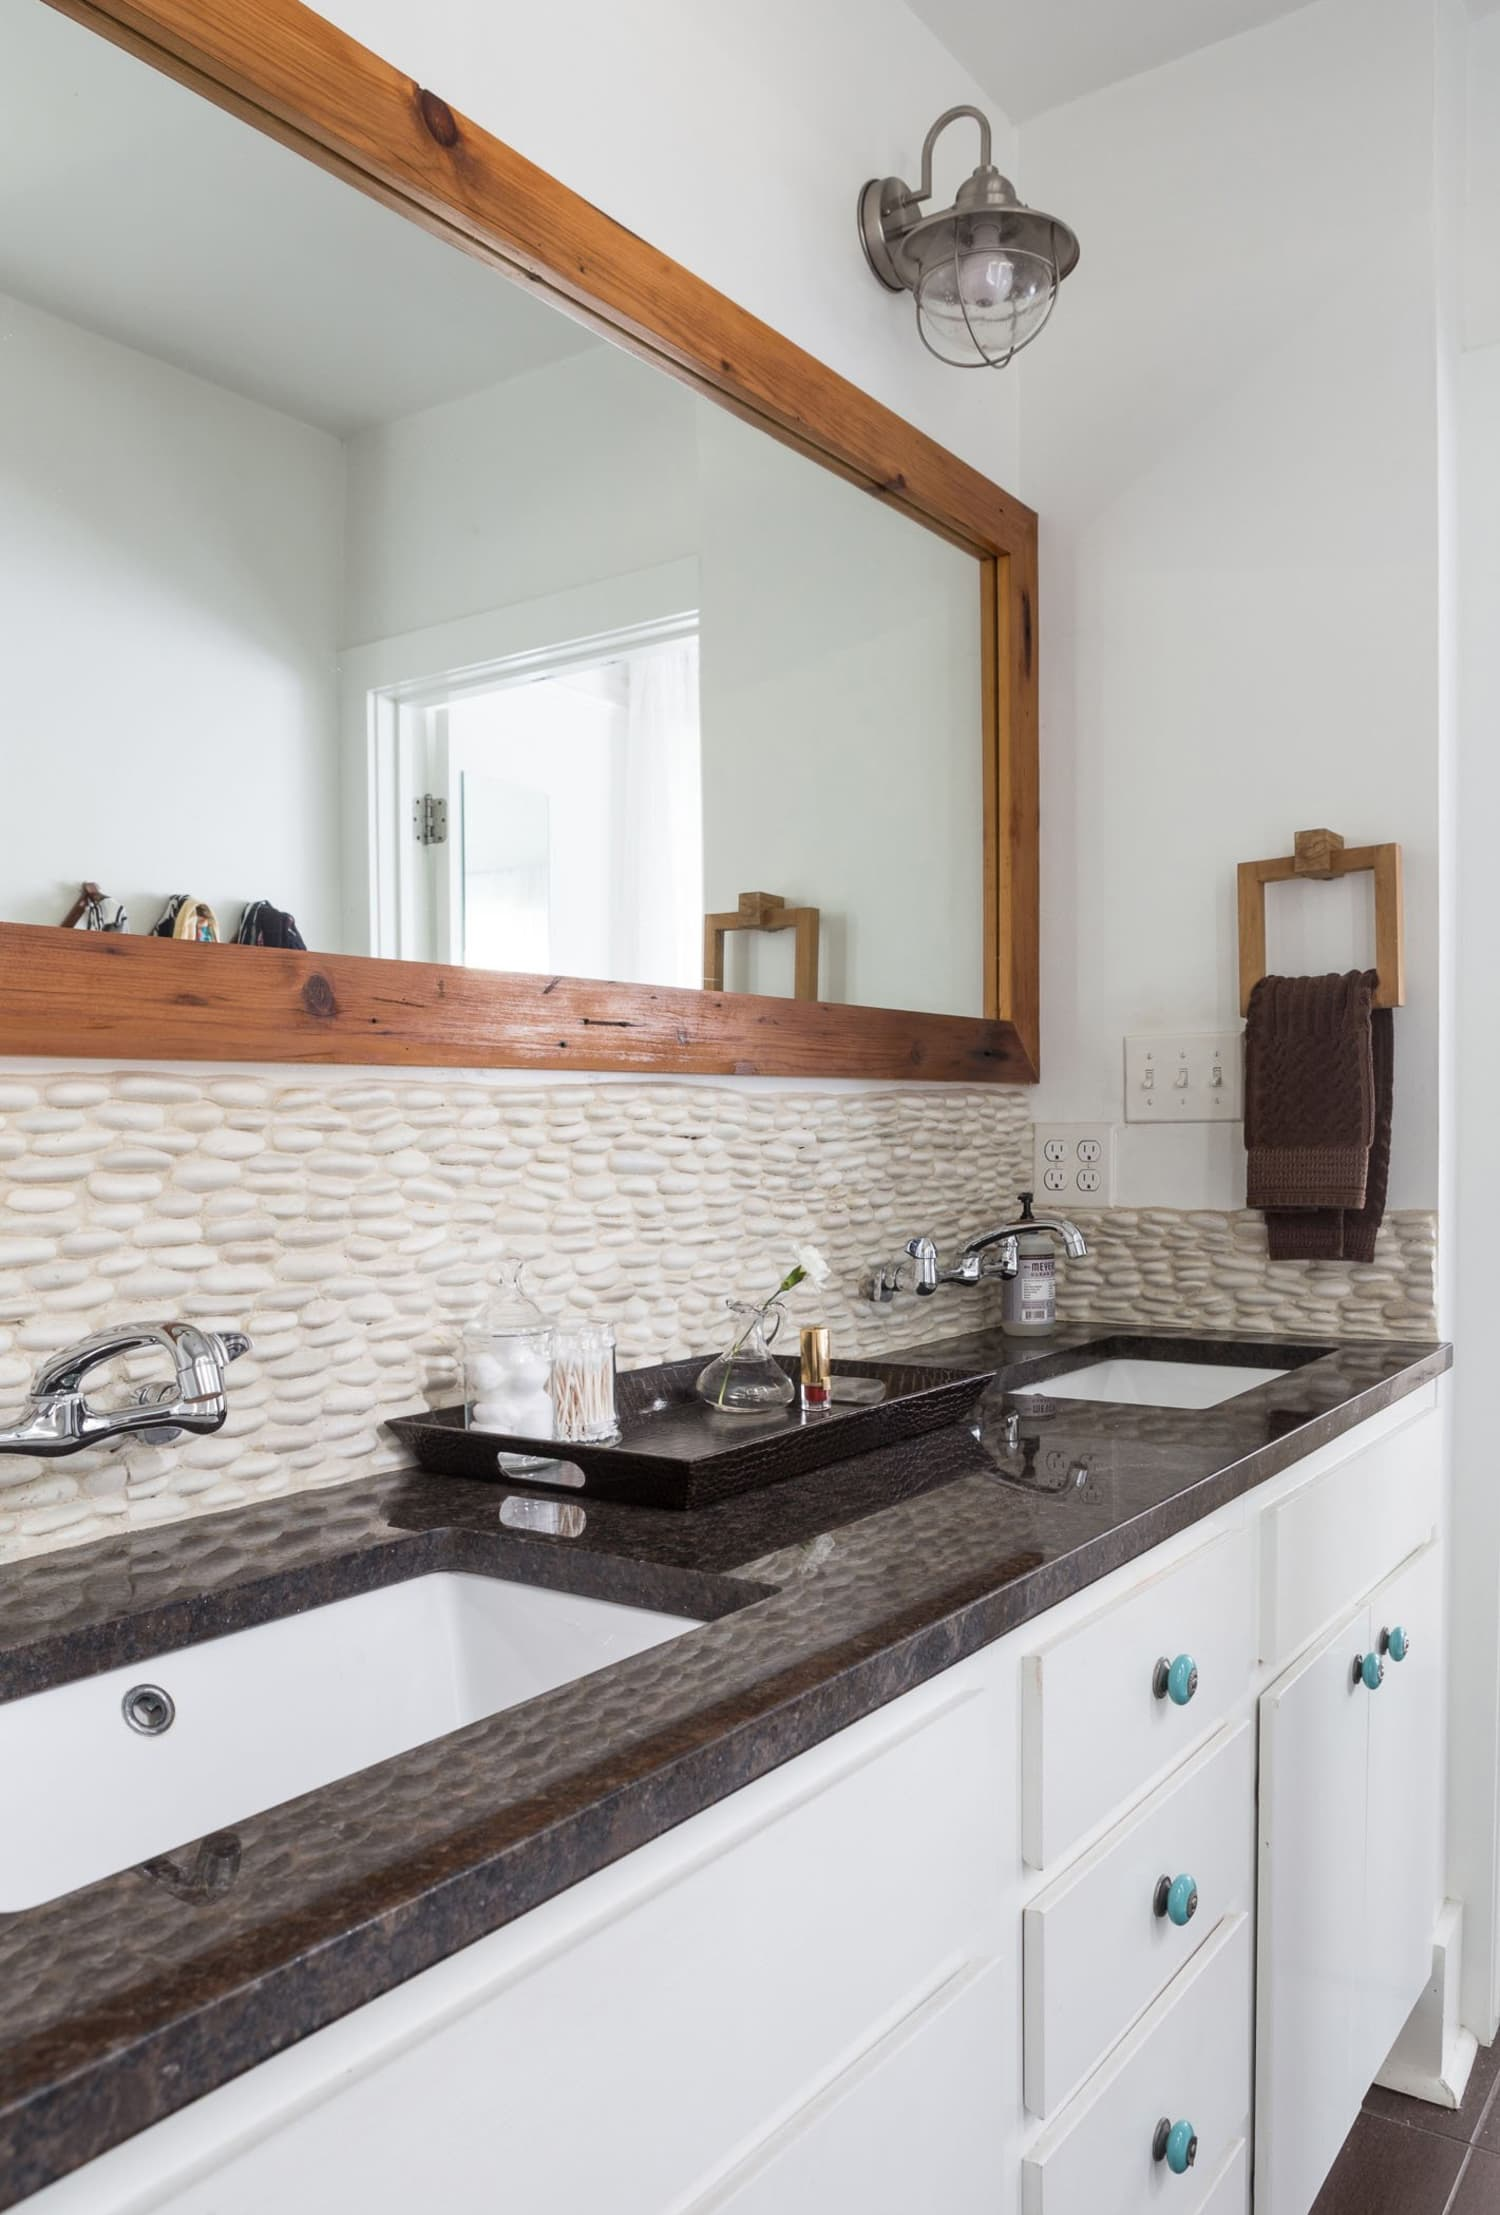 6 Overlooked Home Upgrades That Are Totally Worth It